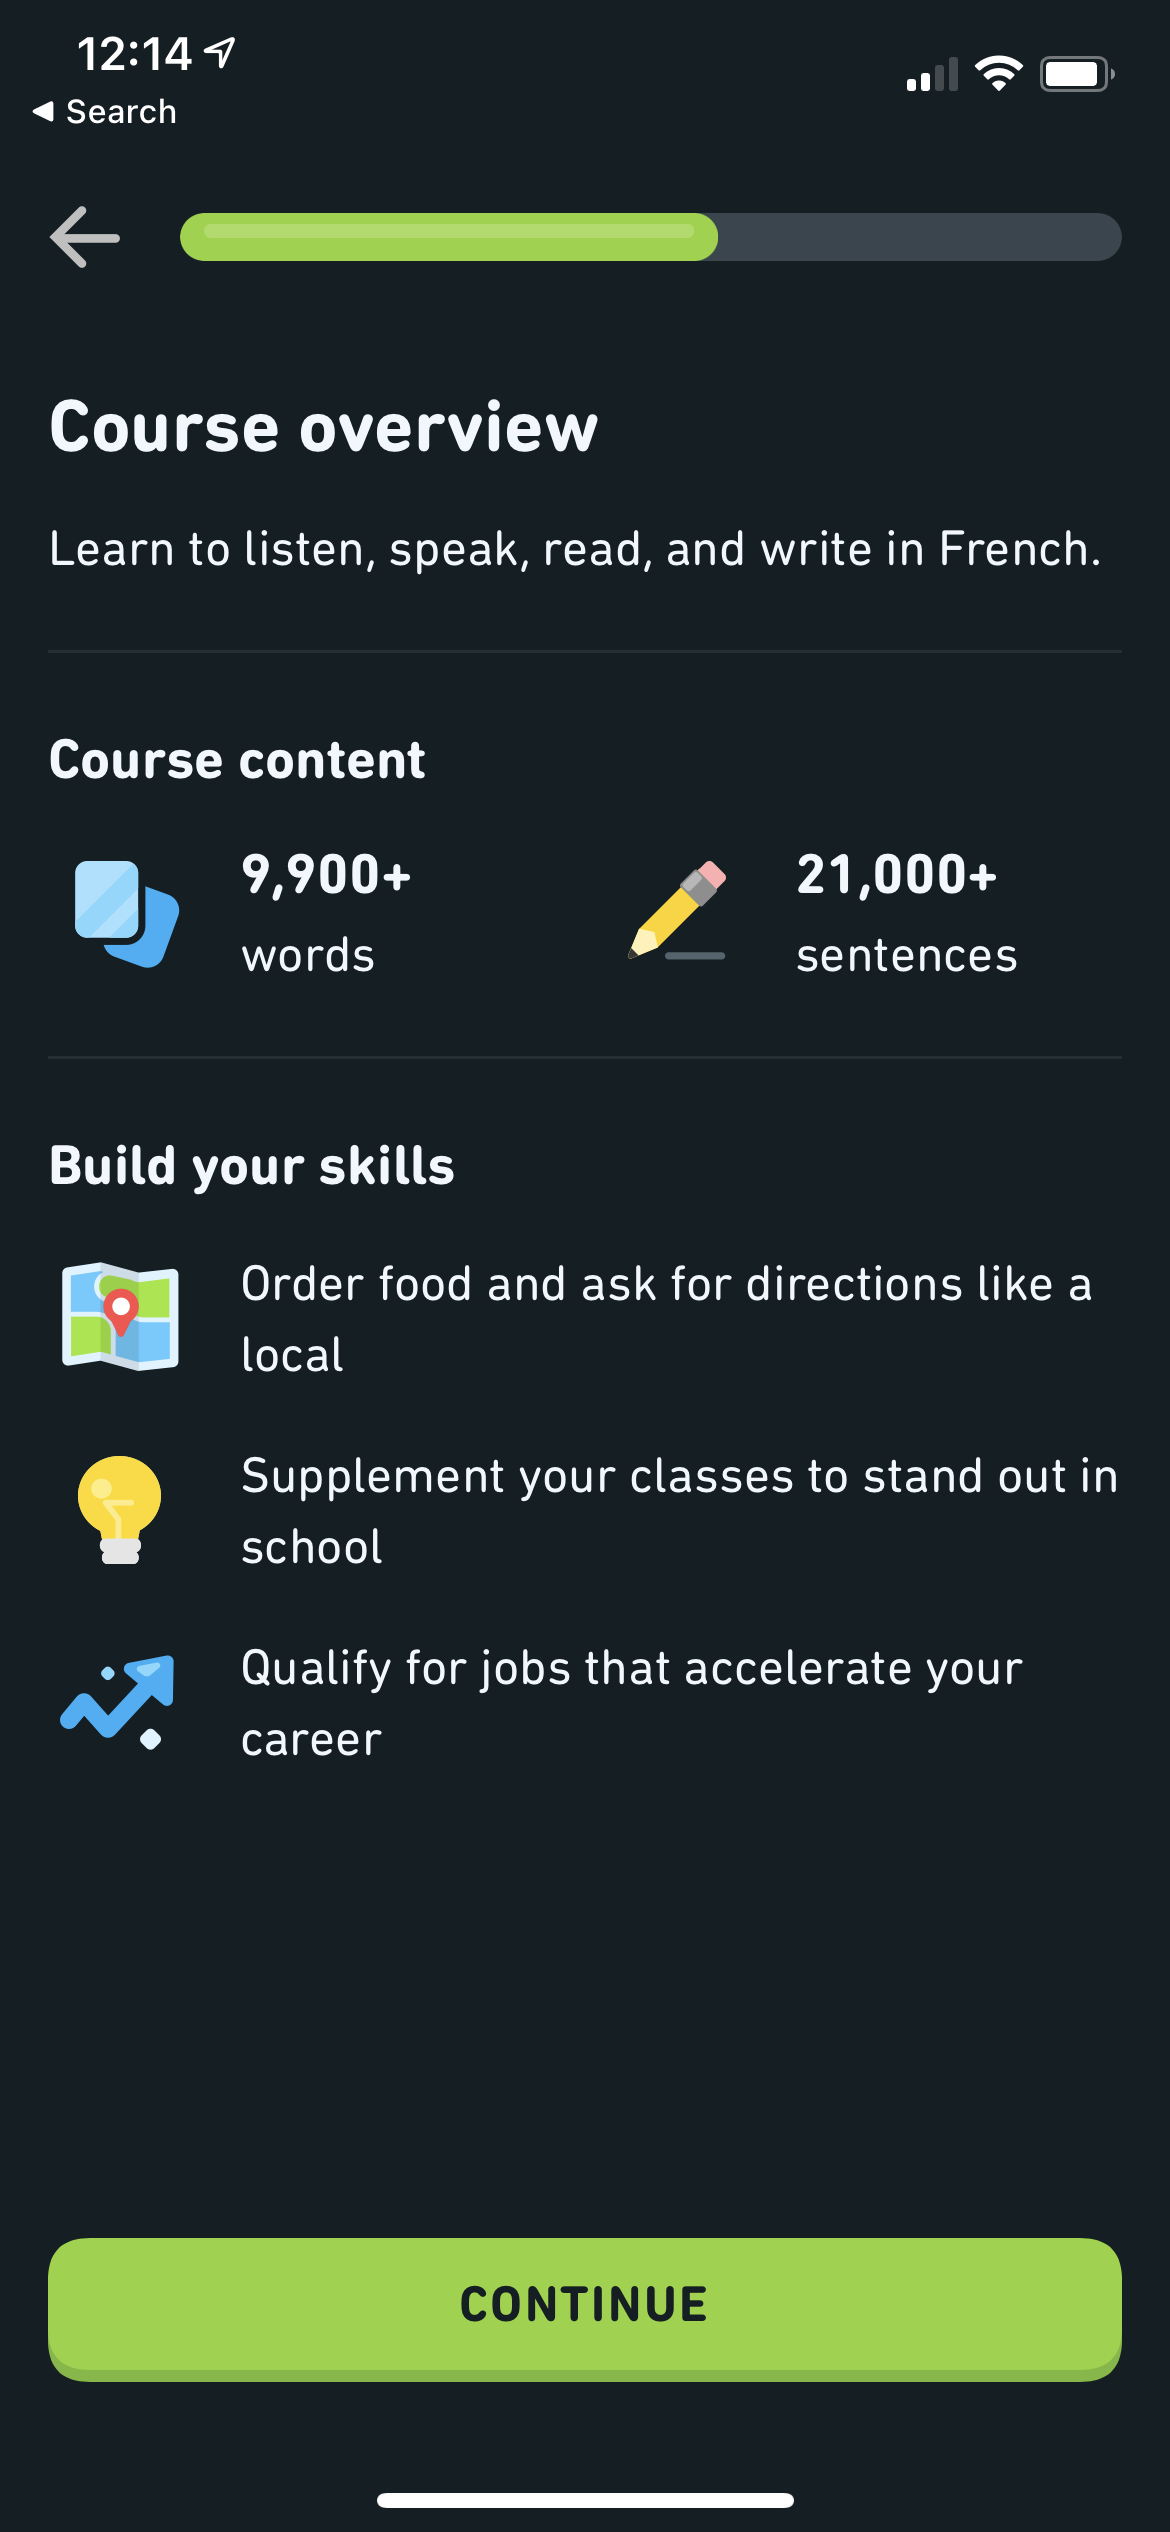 Course Overview on iOS by Duolingo from UIGarage